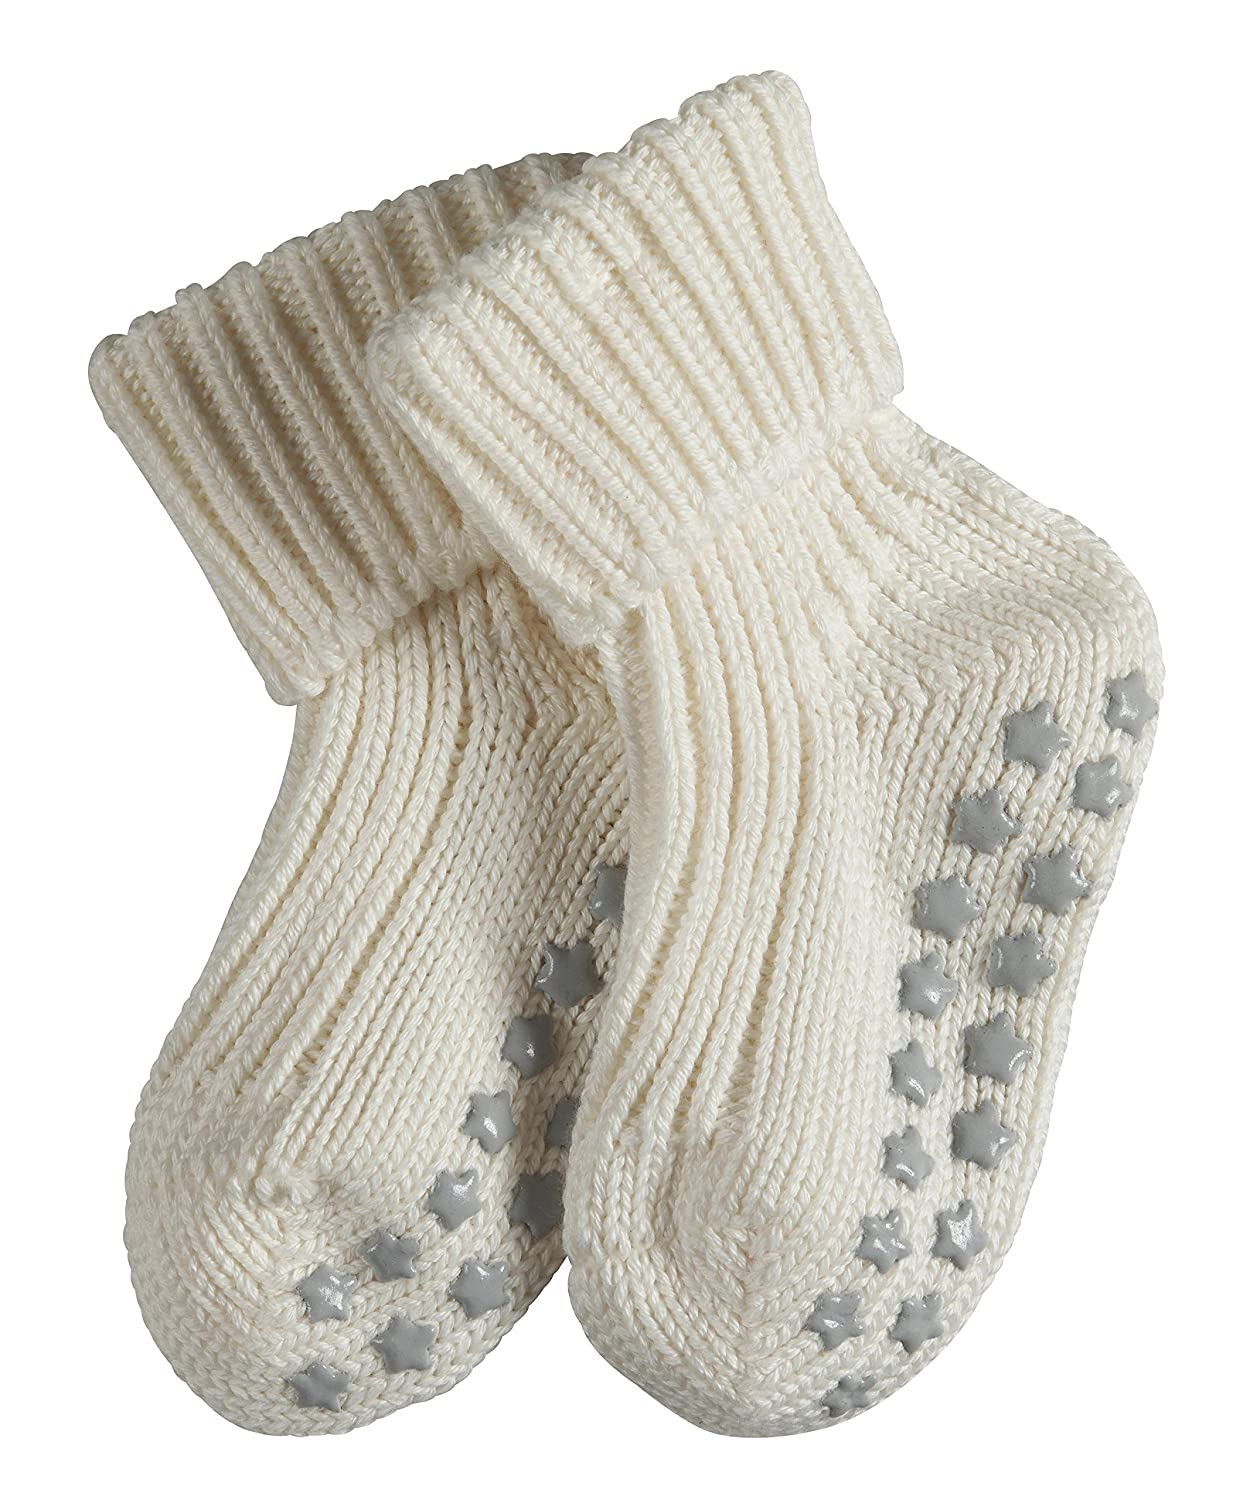 FALKE Unisex Baby Catspads Cotton Socks anti-slip sole Home sock for baby boys and girls 1 Pair 96/% Cotton Multiple Colours Sizes 1-18 months